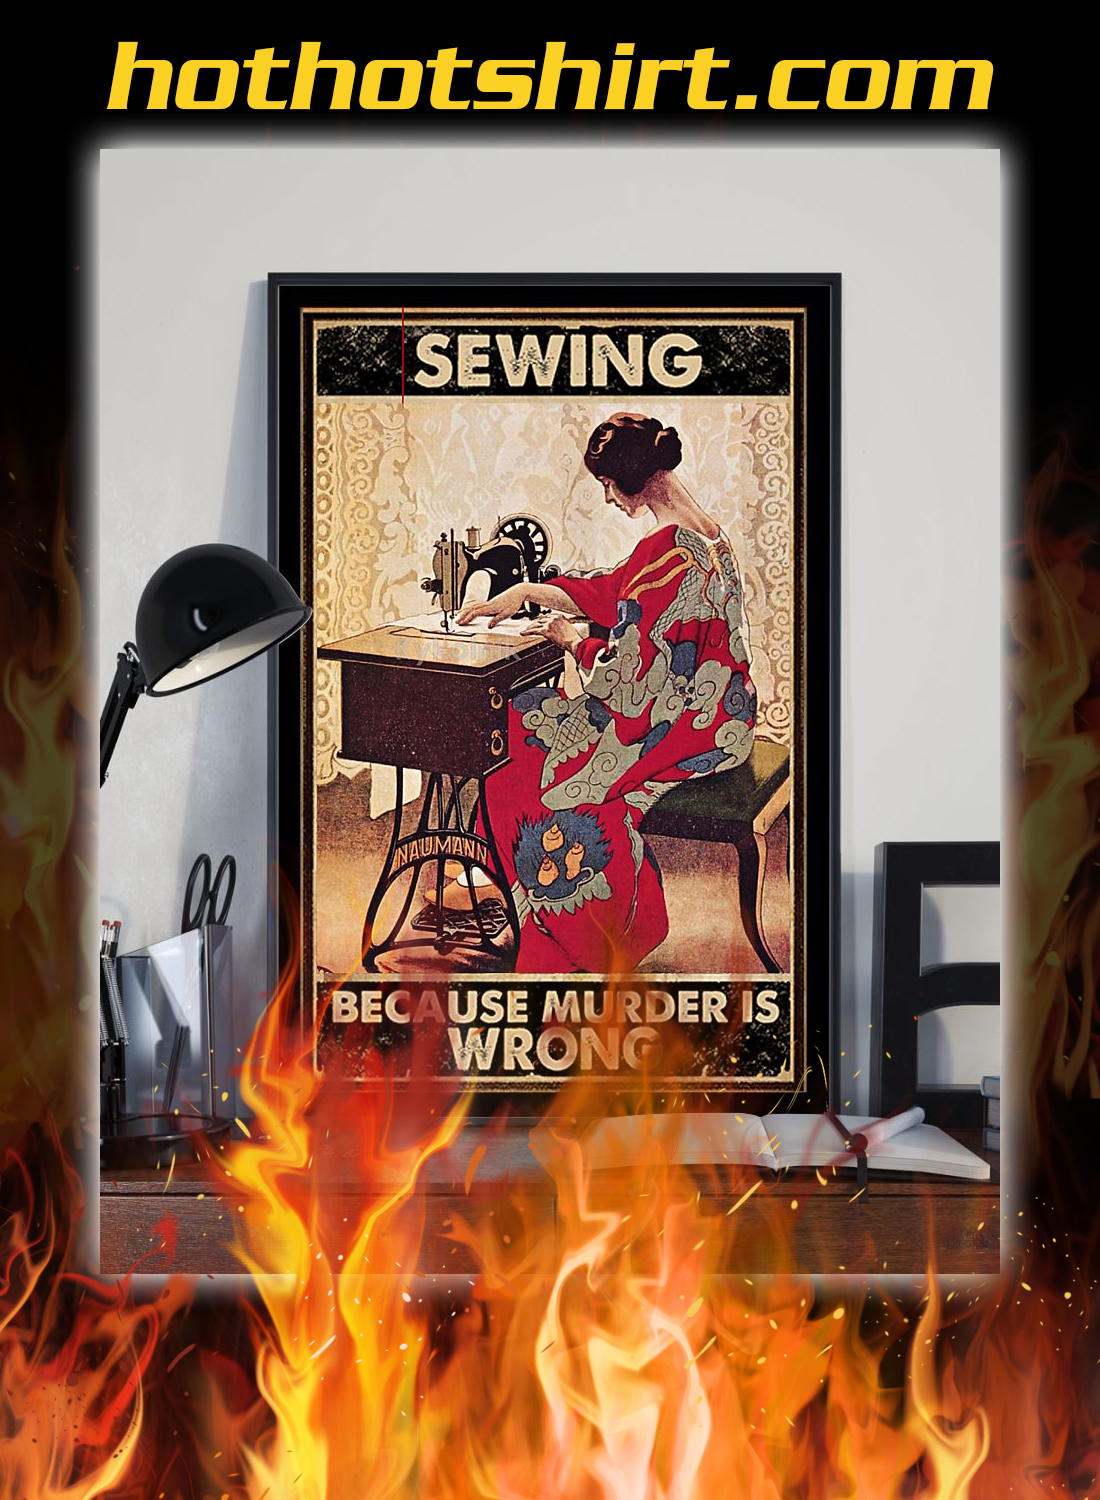 Girl sewing because murder is wrong poster 1